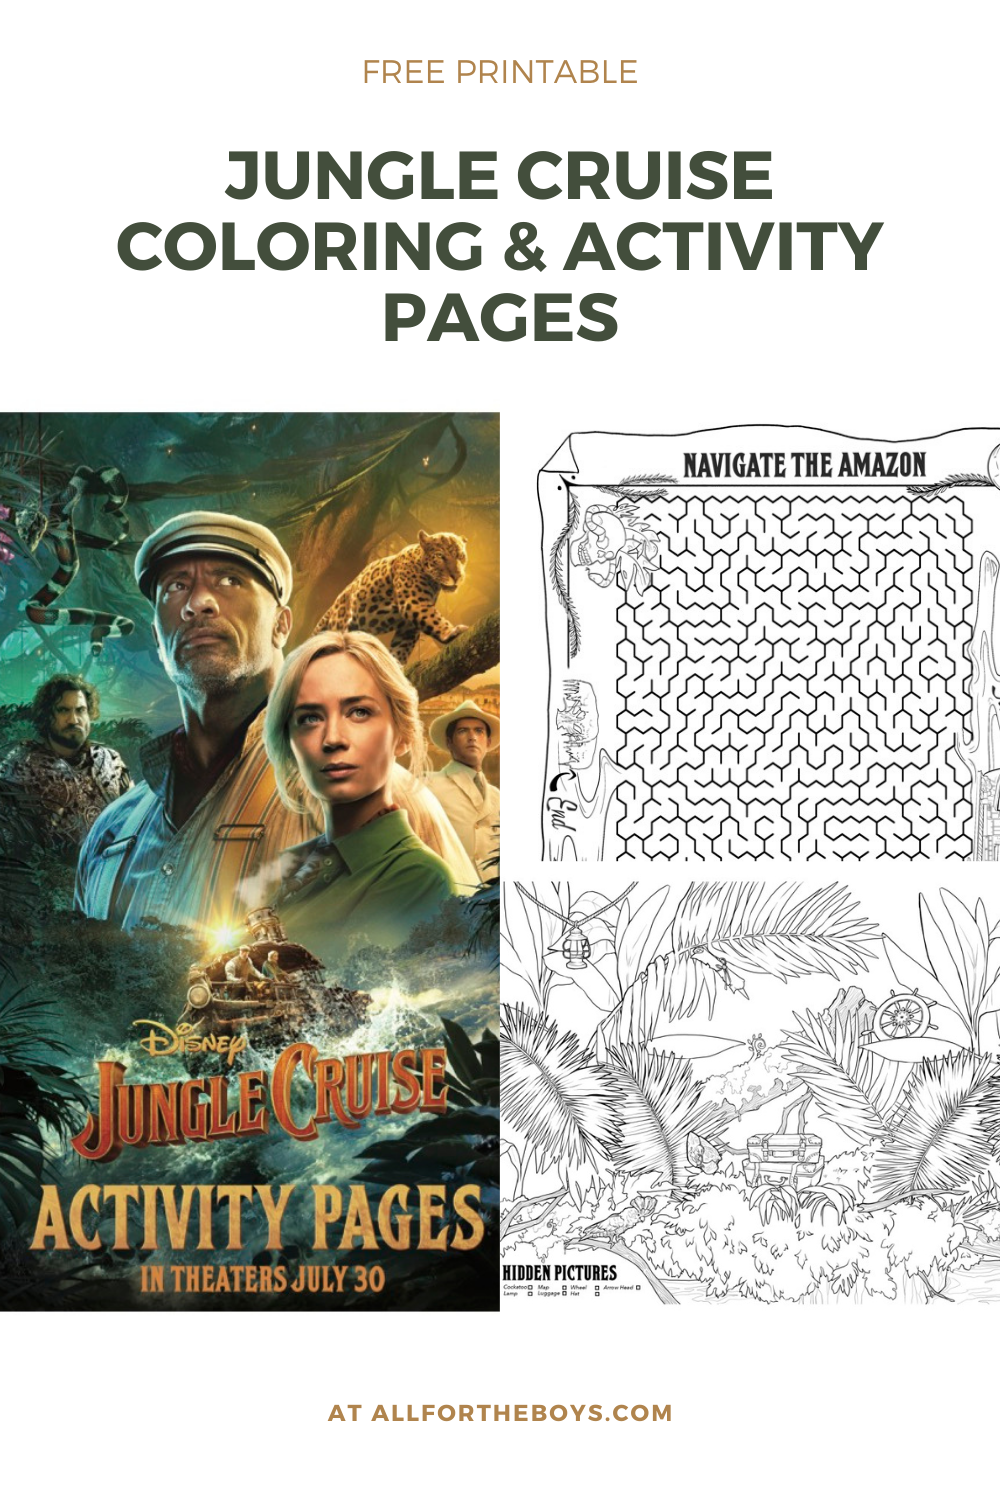 Jungle Cruise printable activity and coloring sheets